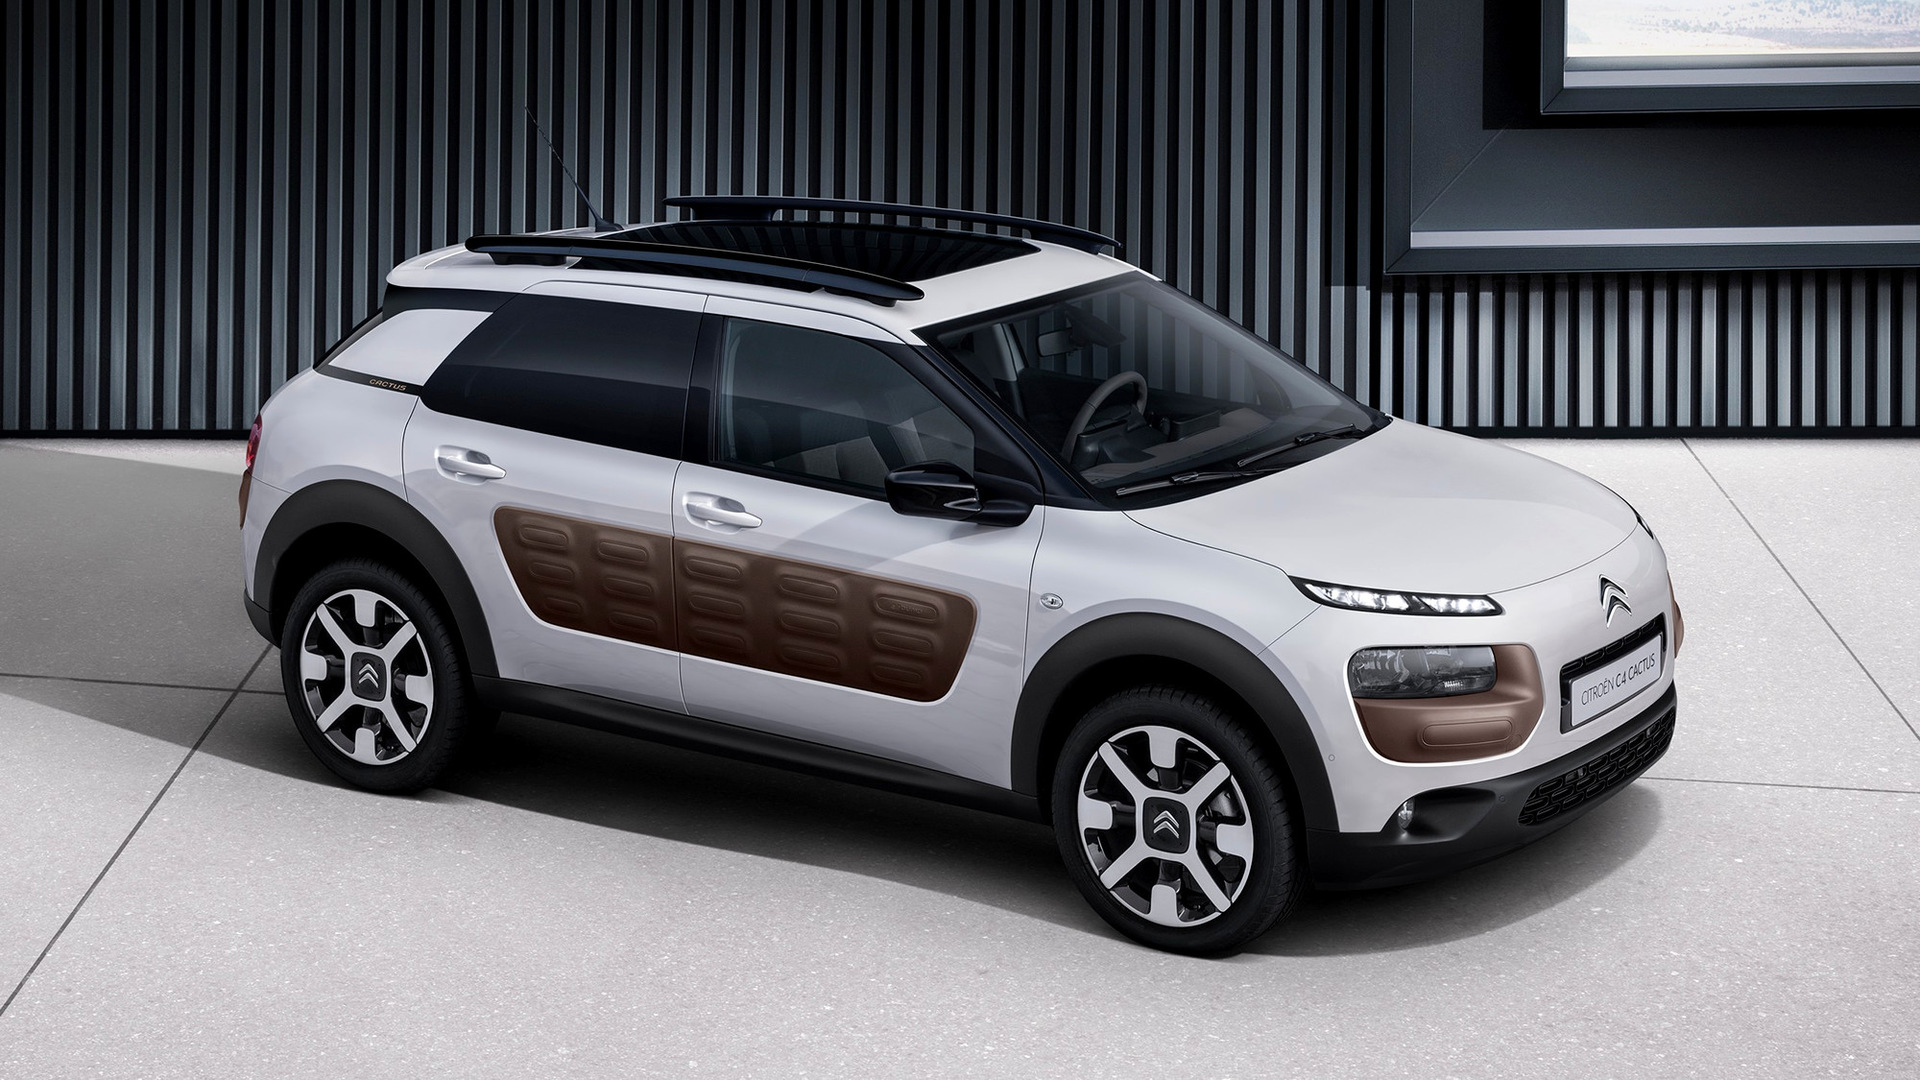 Citroen C4 Cactus (2014) Wallpapers and HD Images - Car Pixel